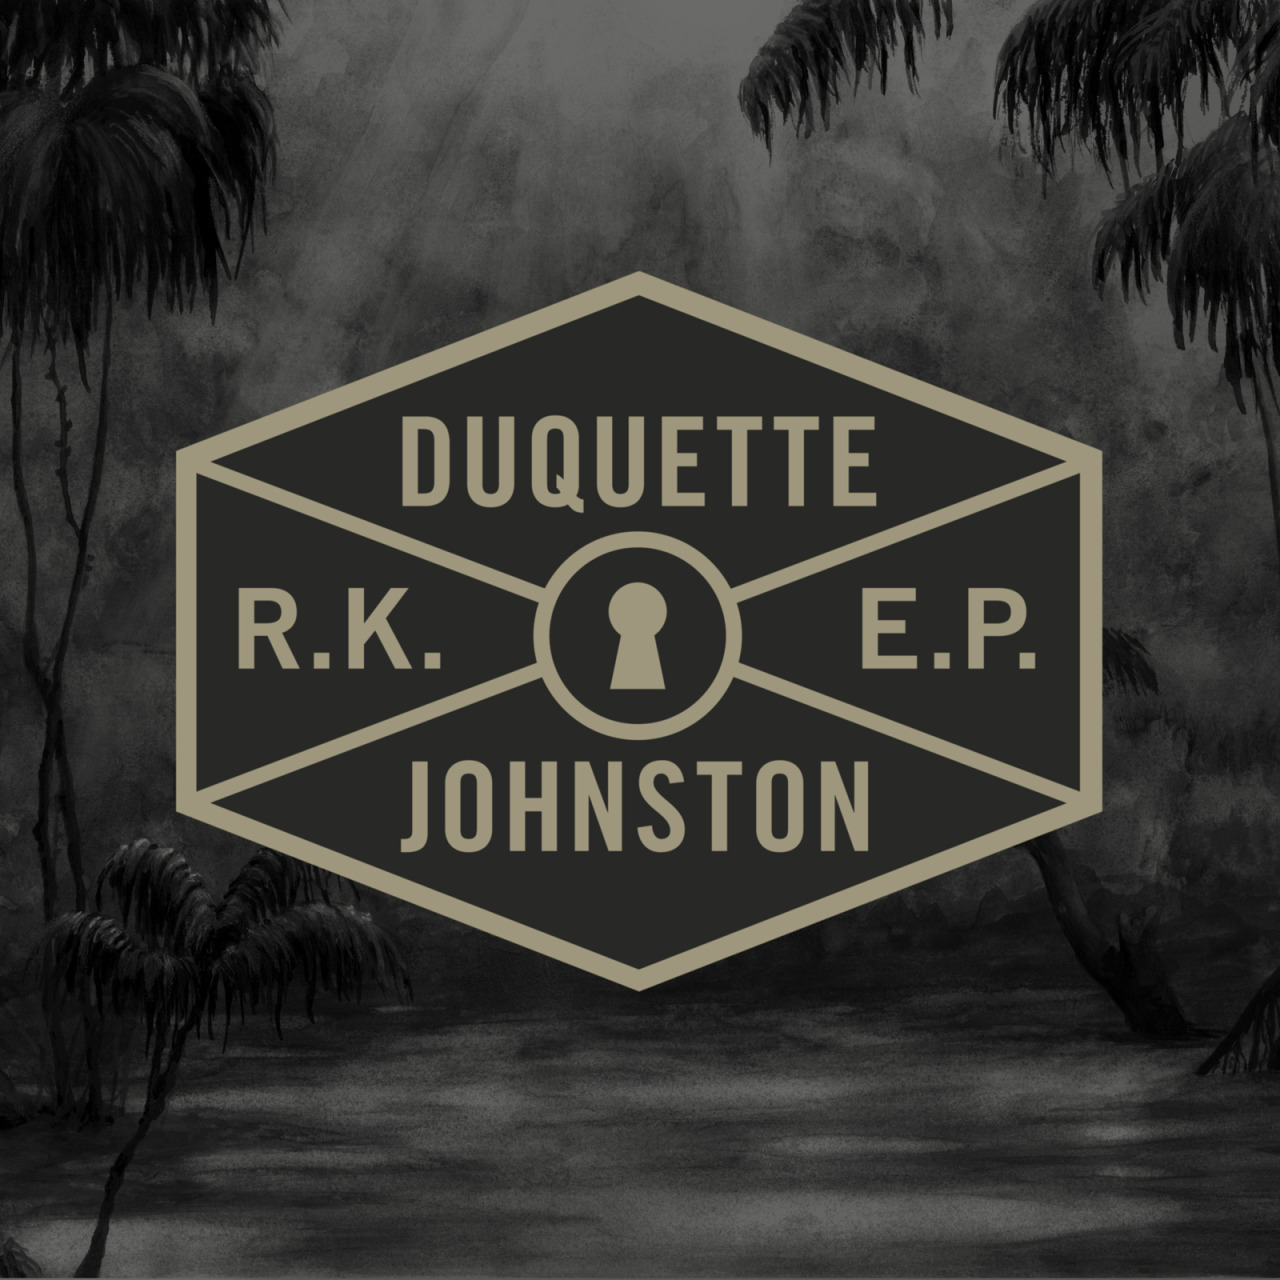 Our brother Duquette Johnston just released his first new music in 3 years! It's FREE on Noisetrade. Tip if you love it. Support great music. More coming soon.